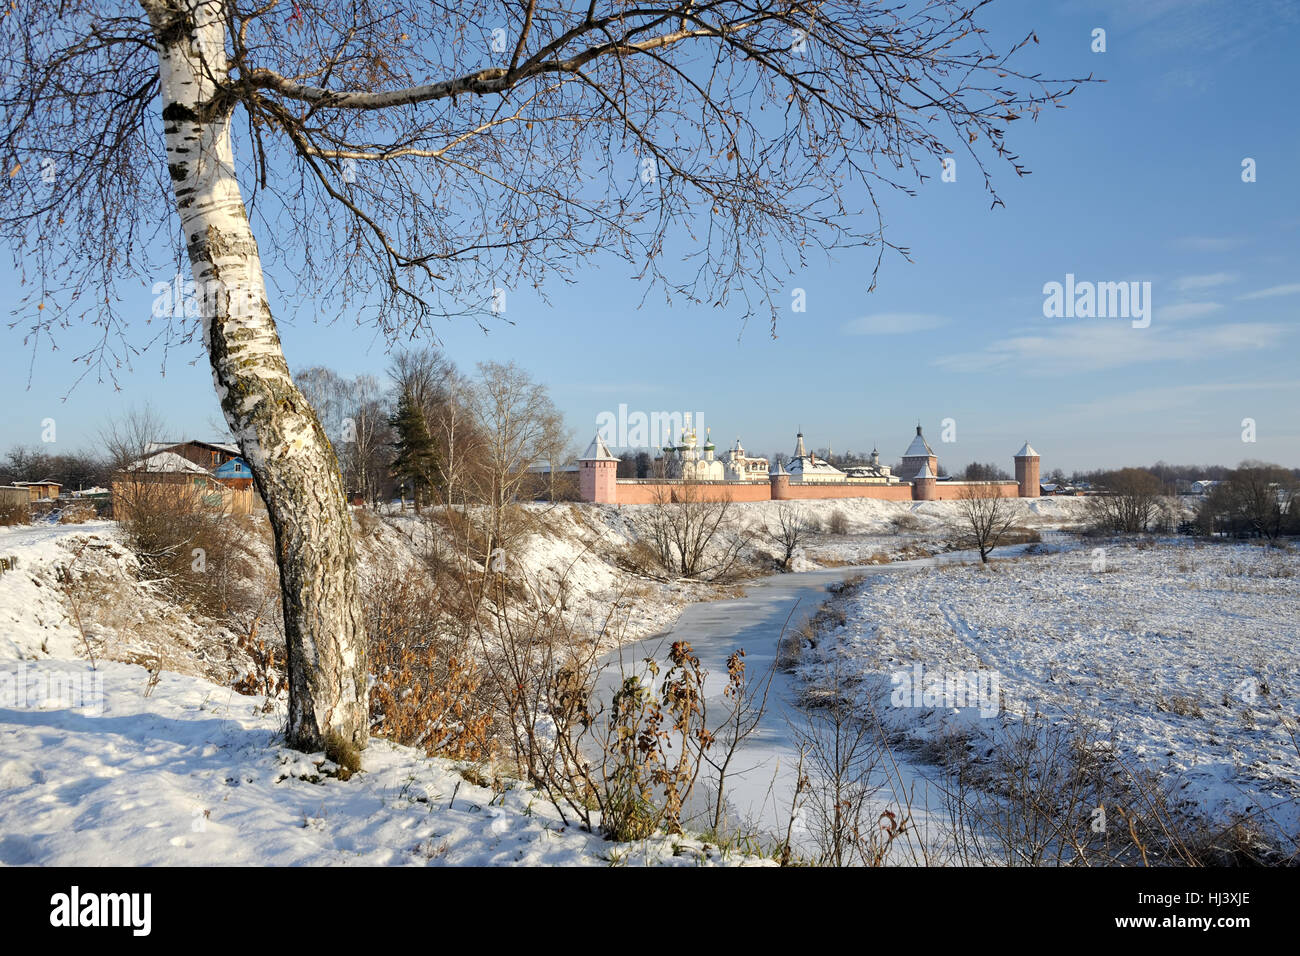 Overlooking St. Euthymius Monastery and Kamenka River at the Beginning of Winter. Cityscapes of Suzdal, Russia. - Stock Image